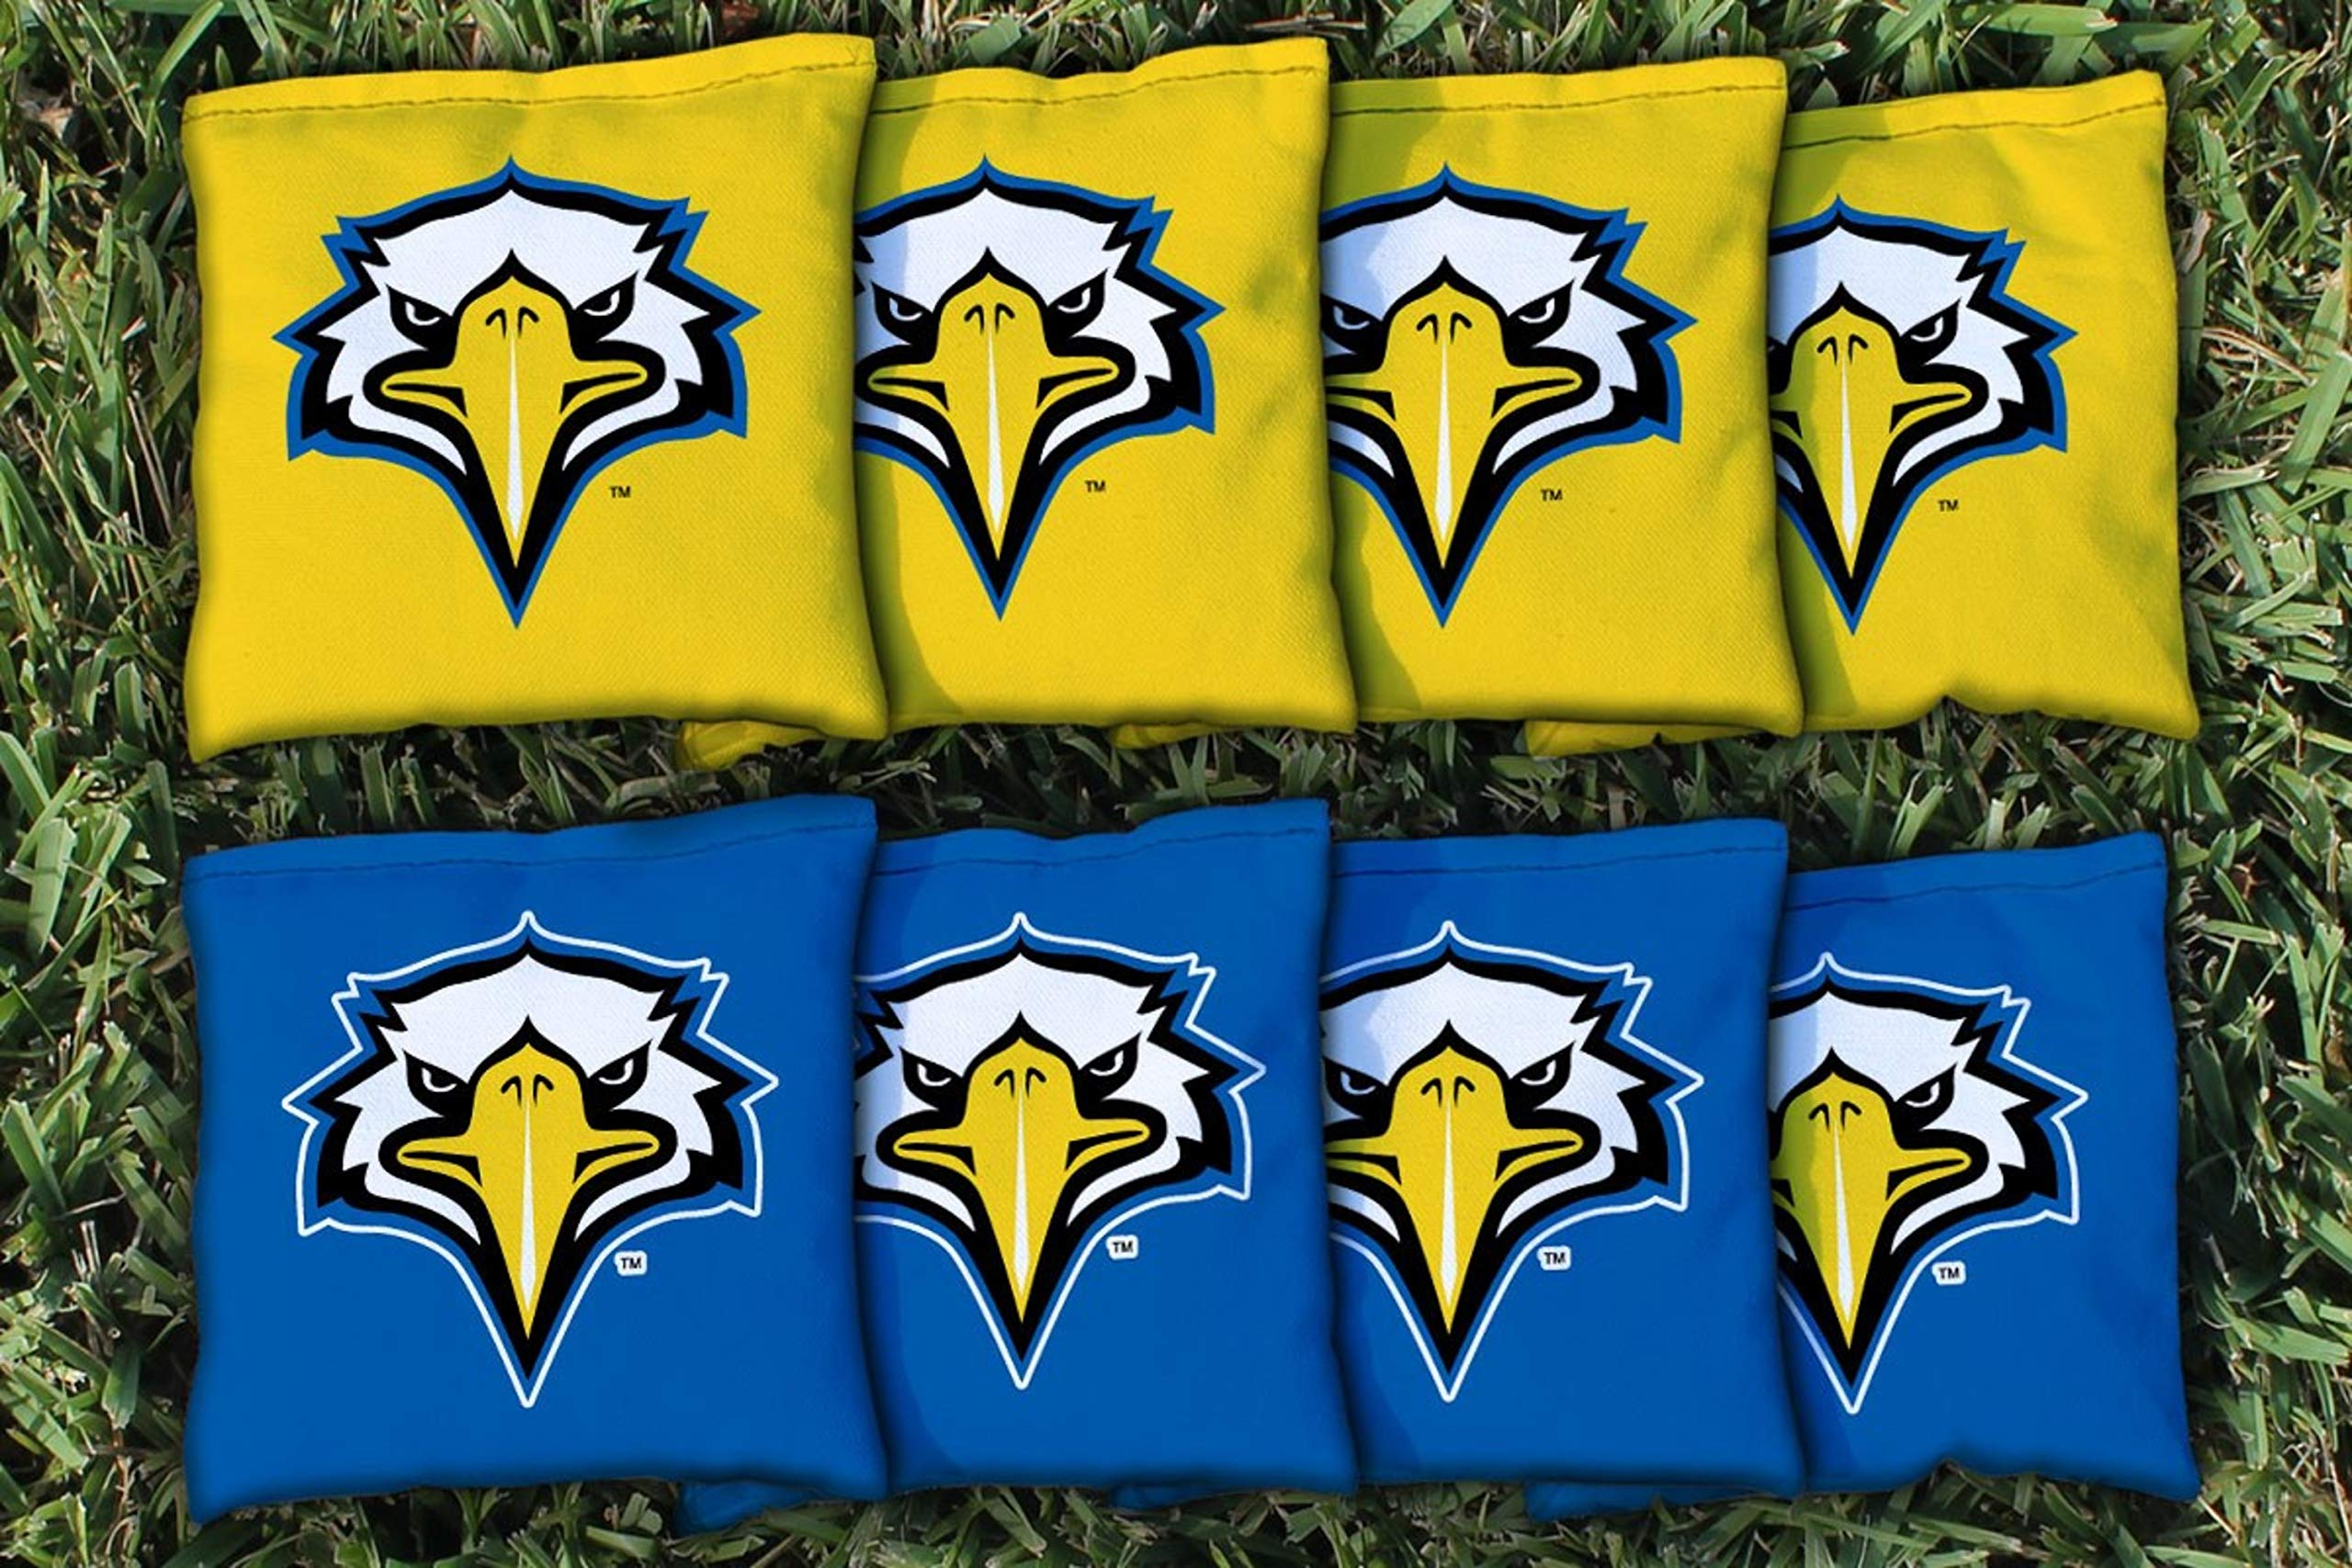 Victory Tailgate NCAA Collegiate Regulation Cornhole Game Bag Set (8 Bags Included, Corn-Filled) - Morehead State Eagles by Victory Tailgate